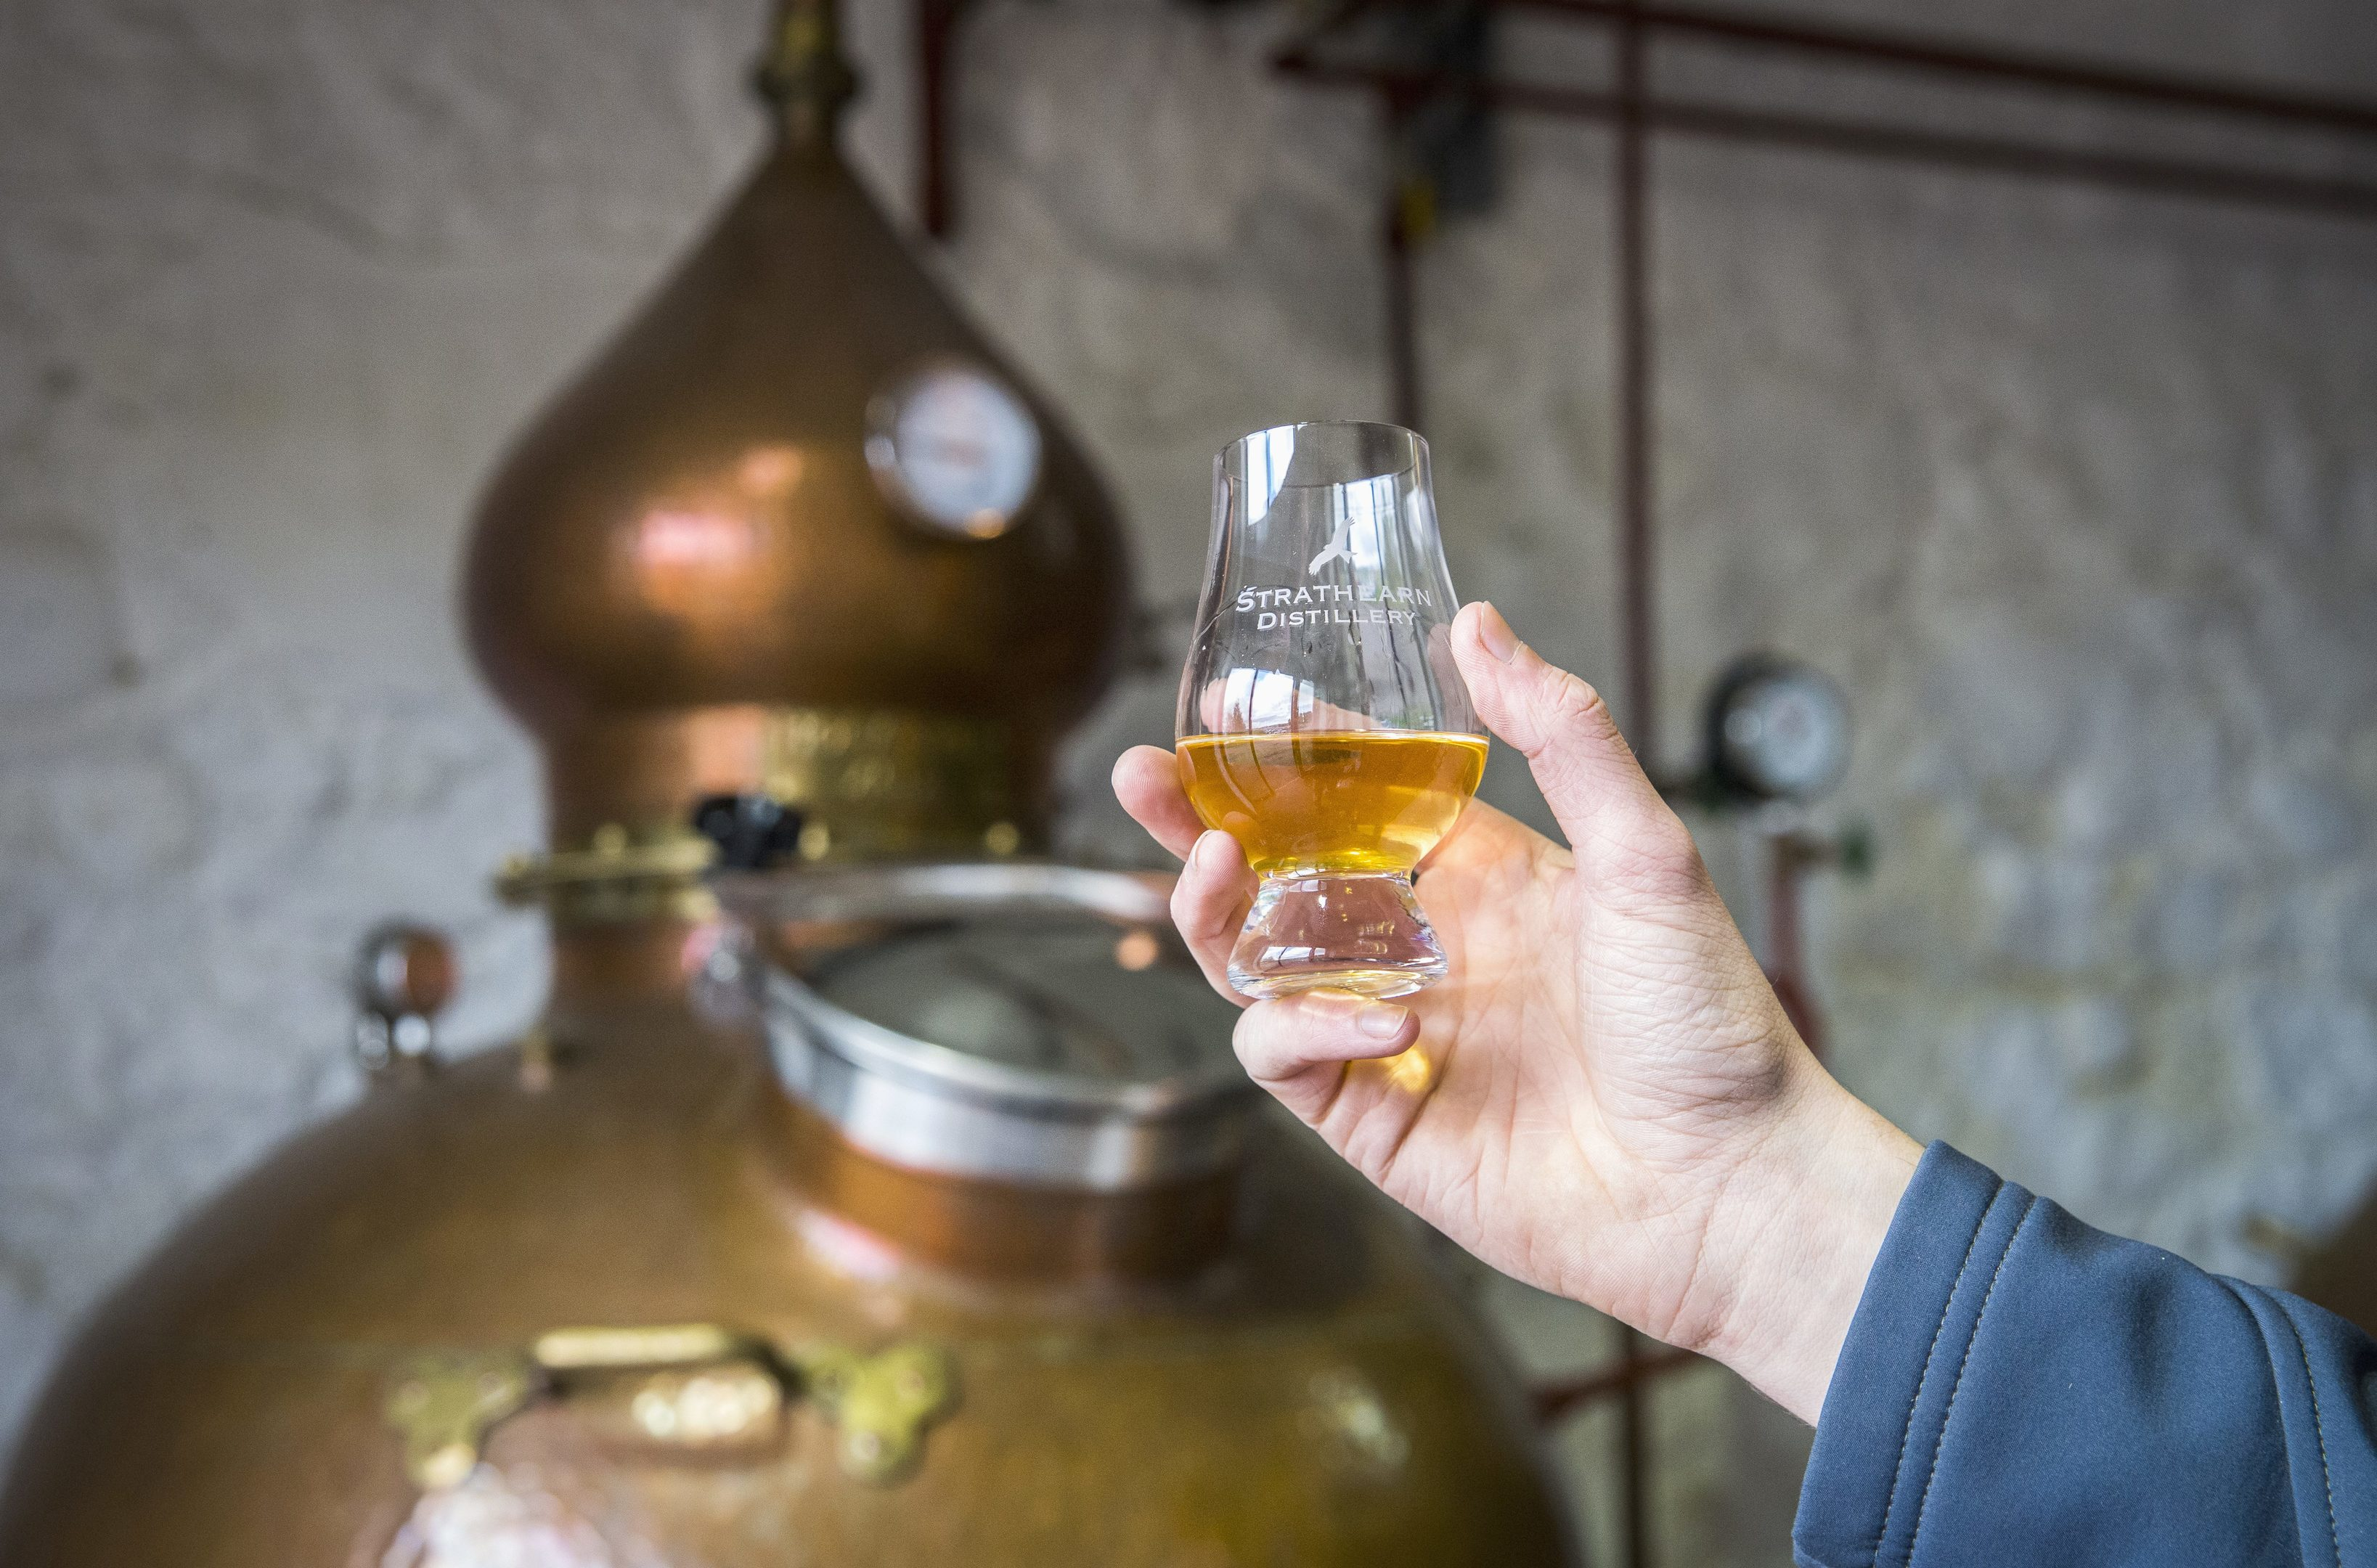 Strathearn Gin being made the Strathearn Distillery in Perthshire